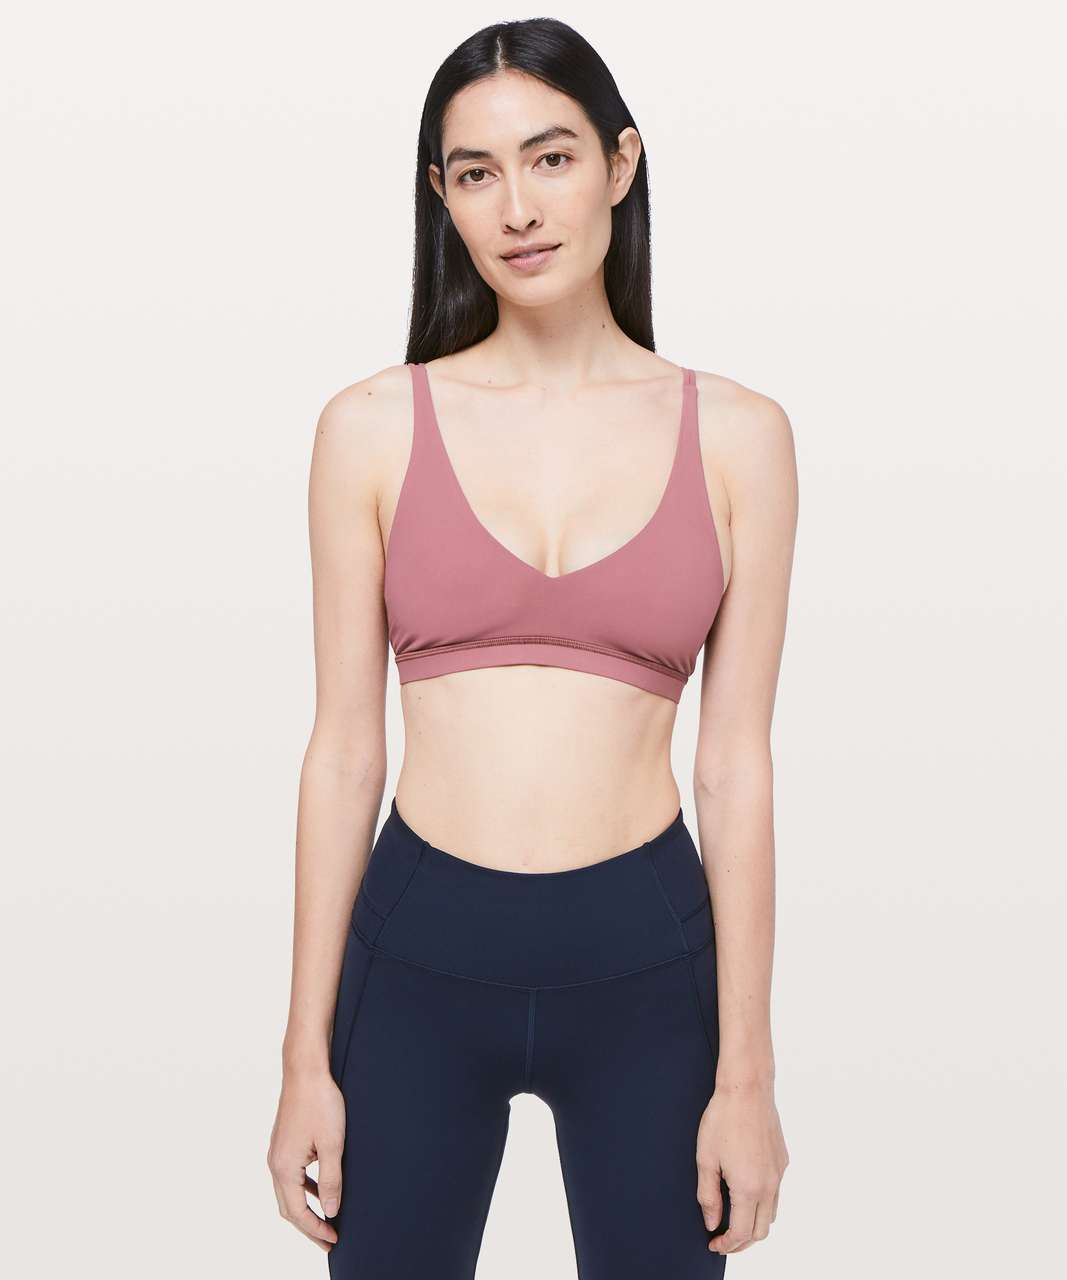 Lululemon Freely Flexed Bra - Misty Merlot